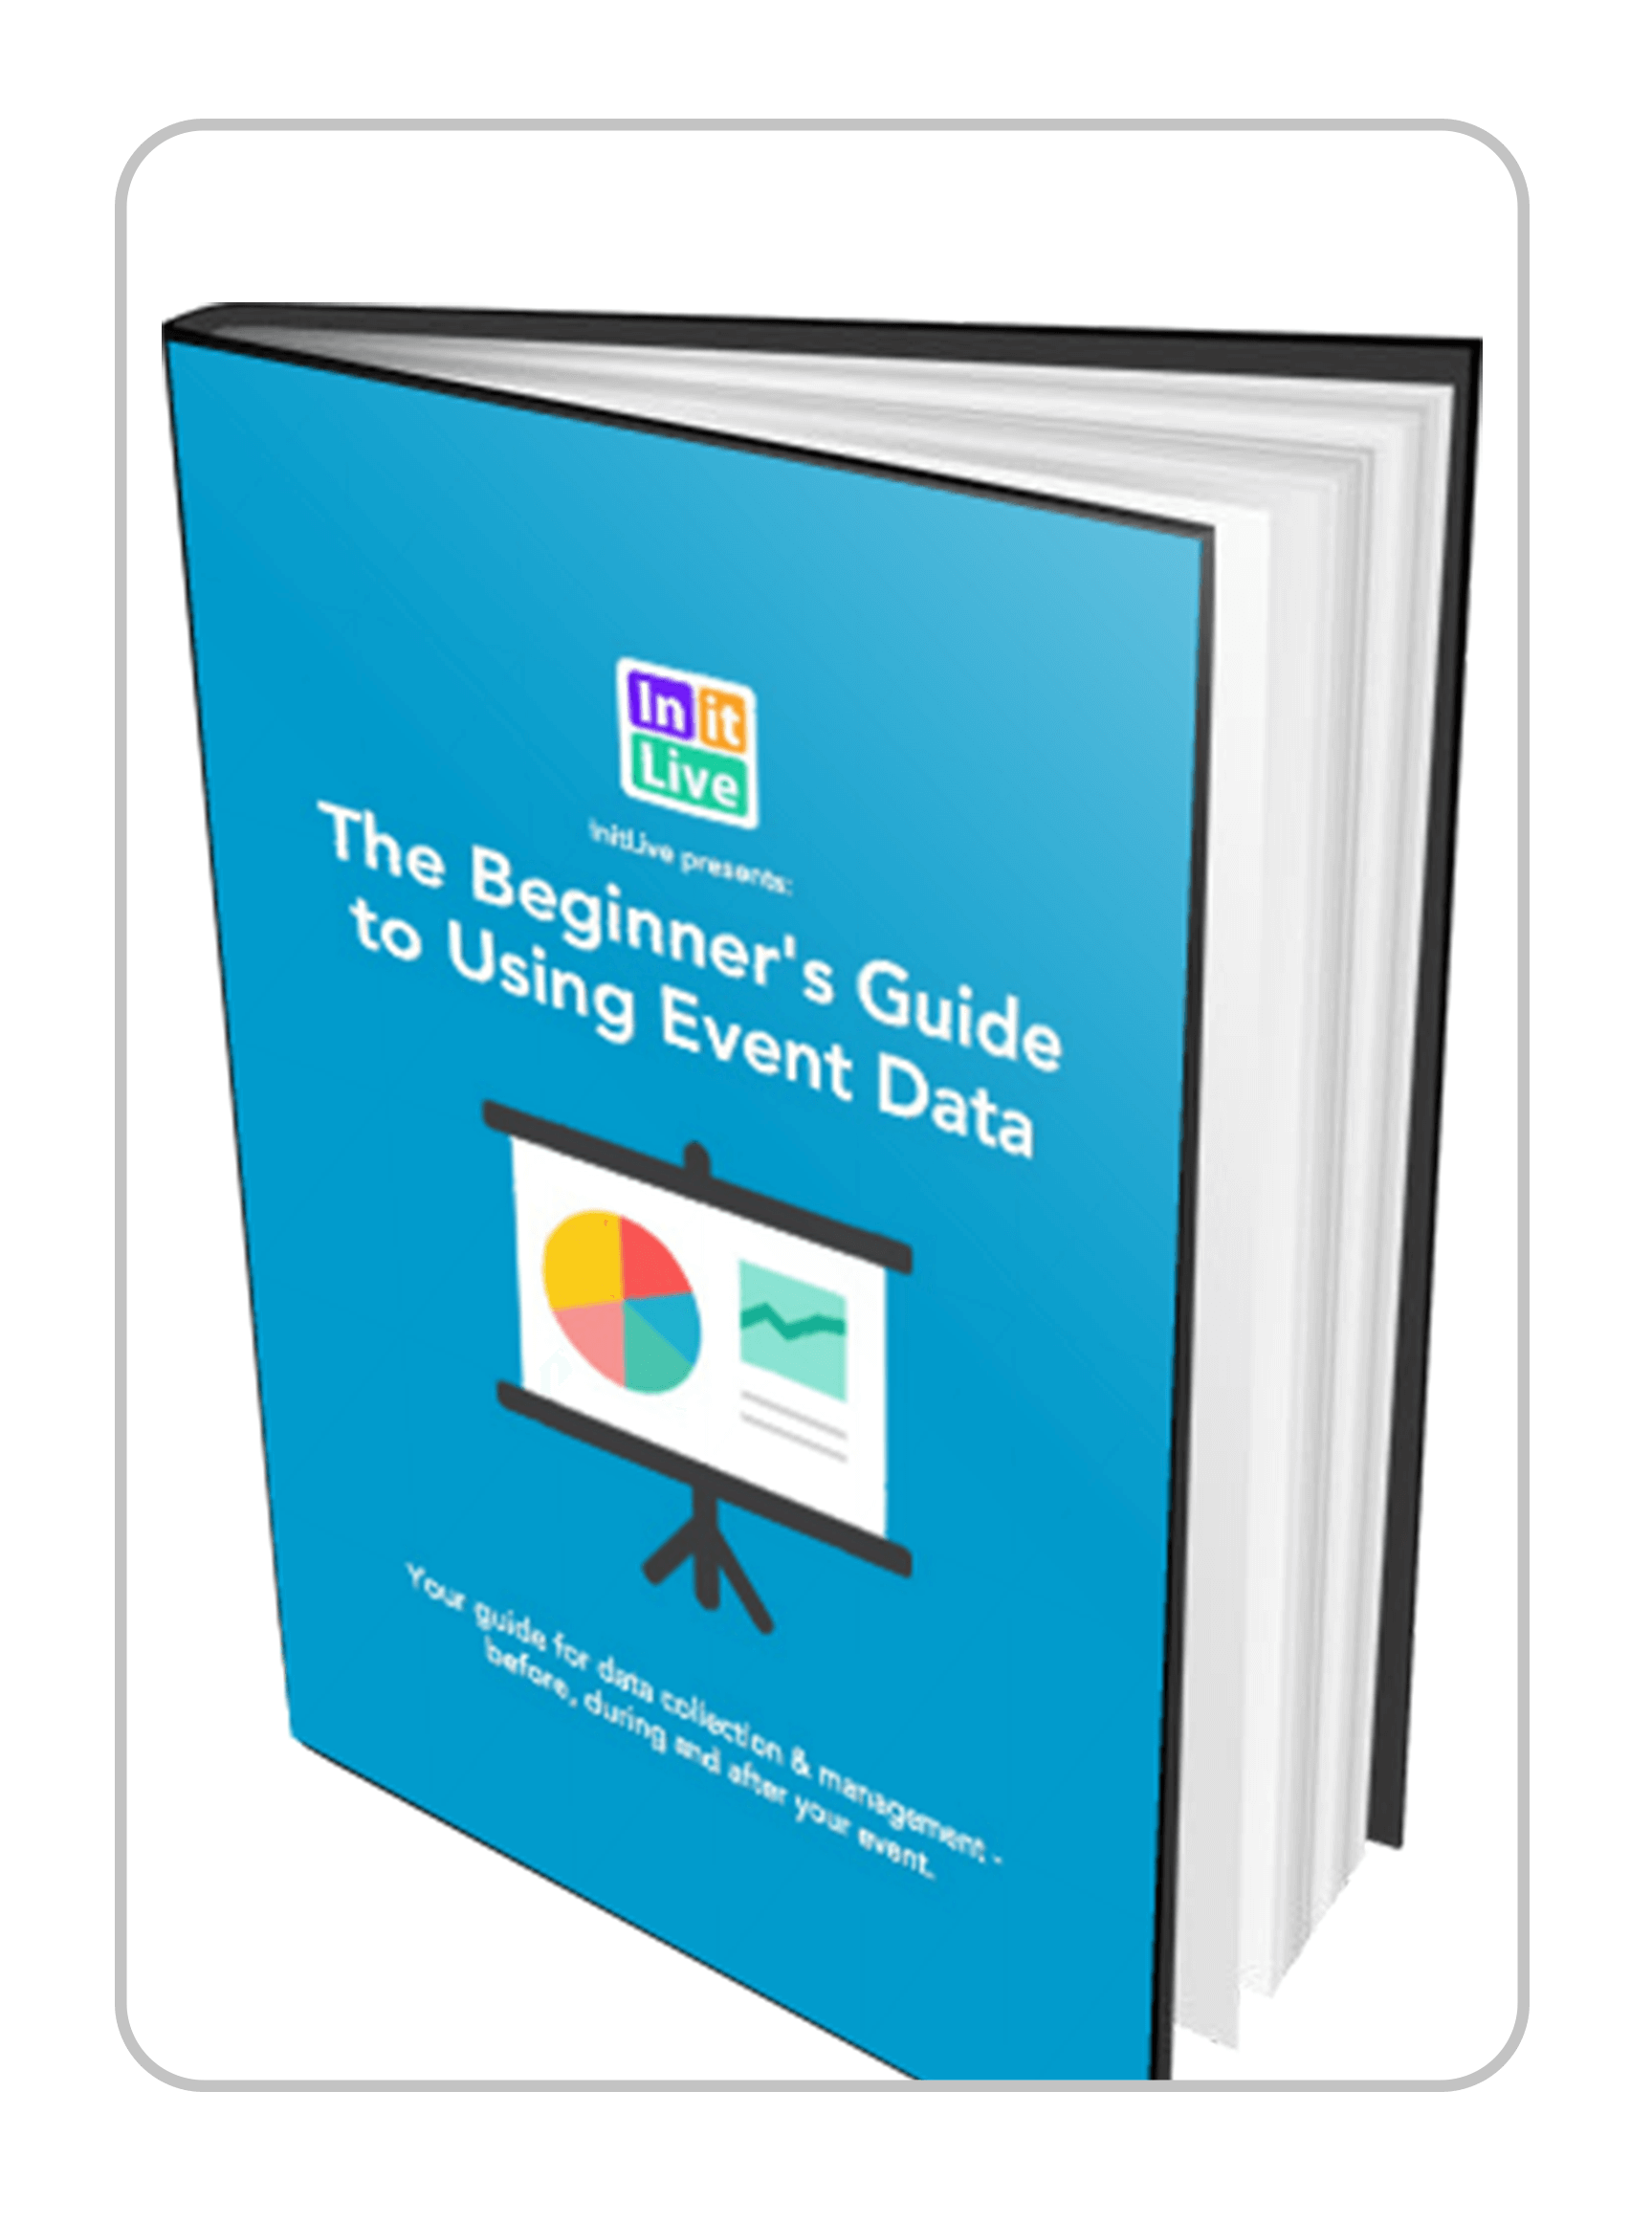 The Beginner's Guide to Using Event Data